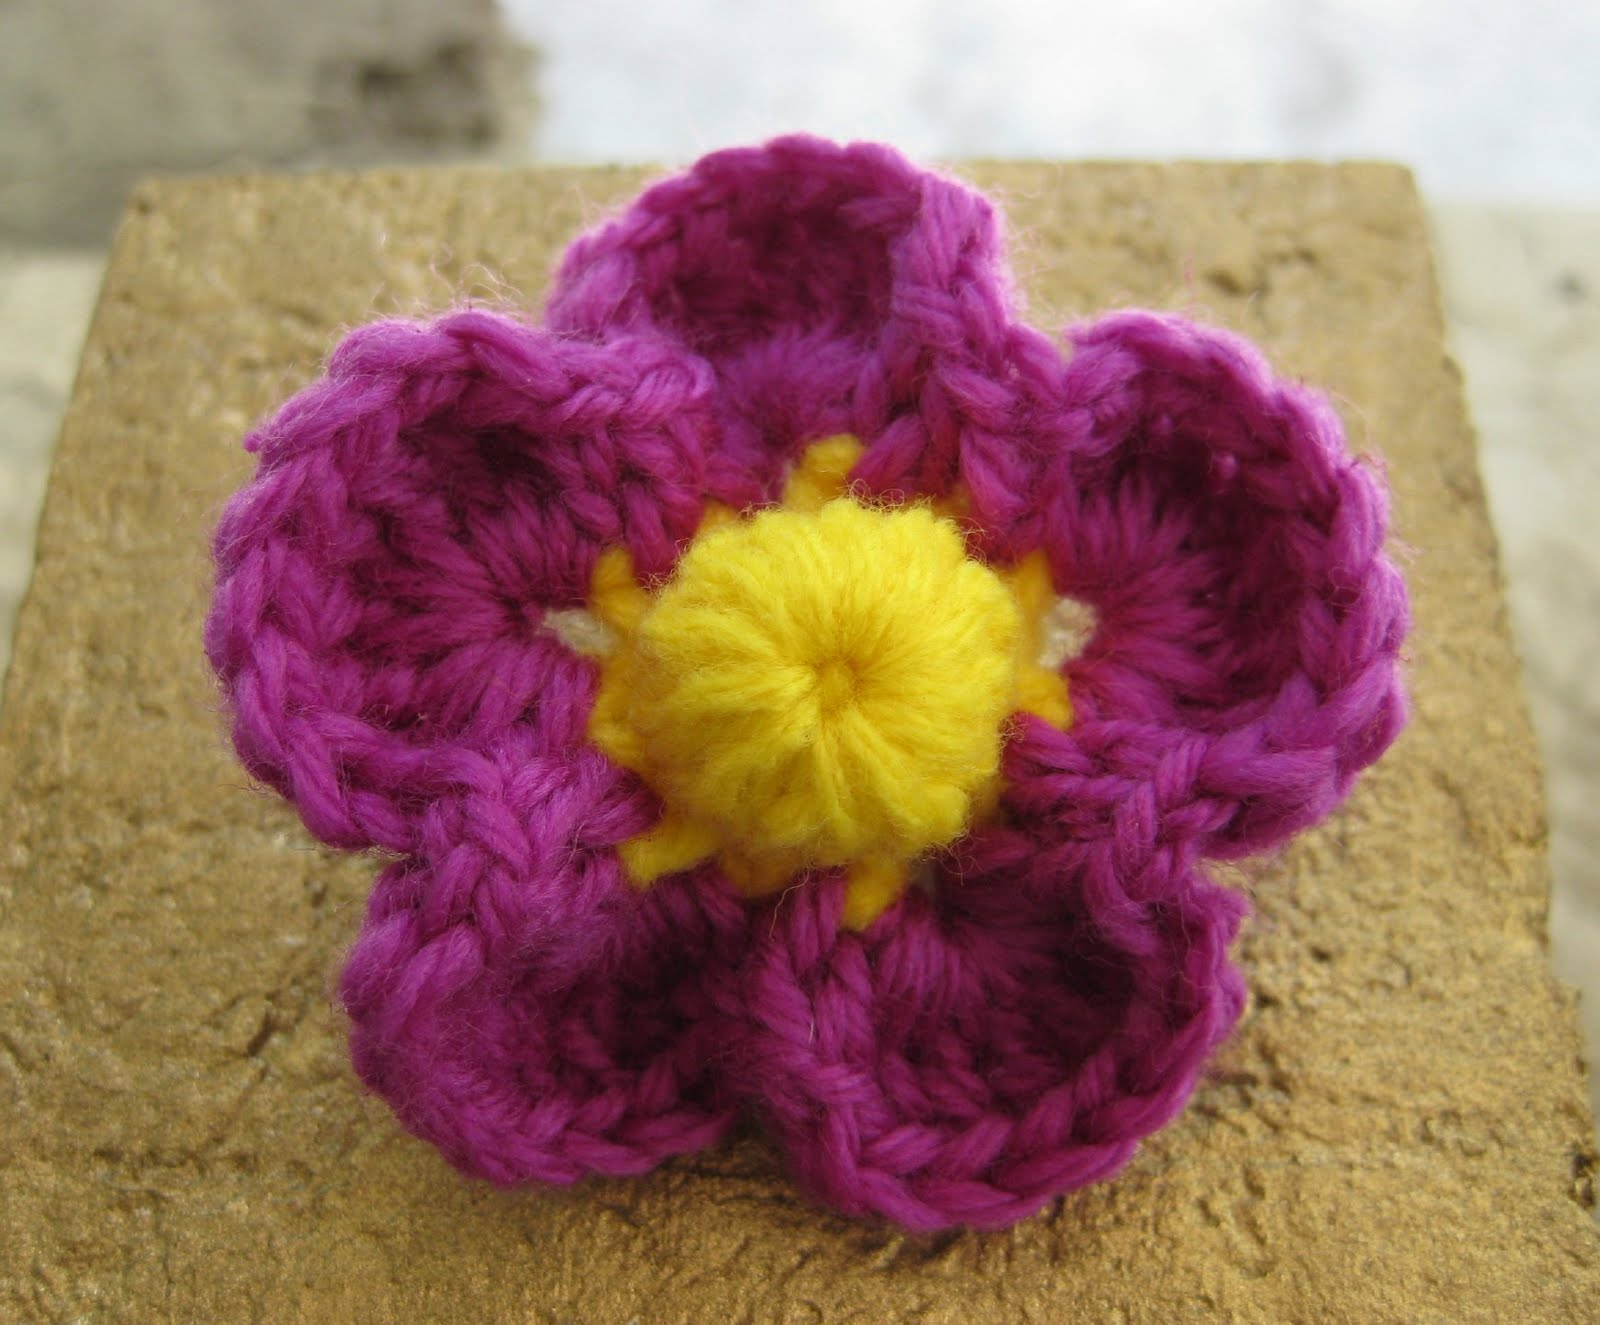 Free Crochet Patterns With Instructions : FREE CROCHET PATTERNS AND INSTRUCTIONS Crochet Tutorials